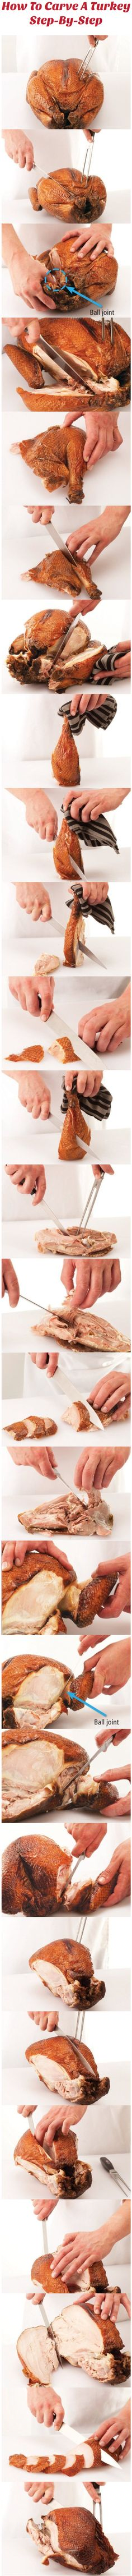 Hosting your first #Thanksgiving dinner? Check out these step-by-step #turkey #carving instructions!